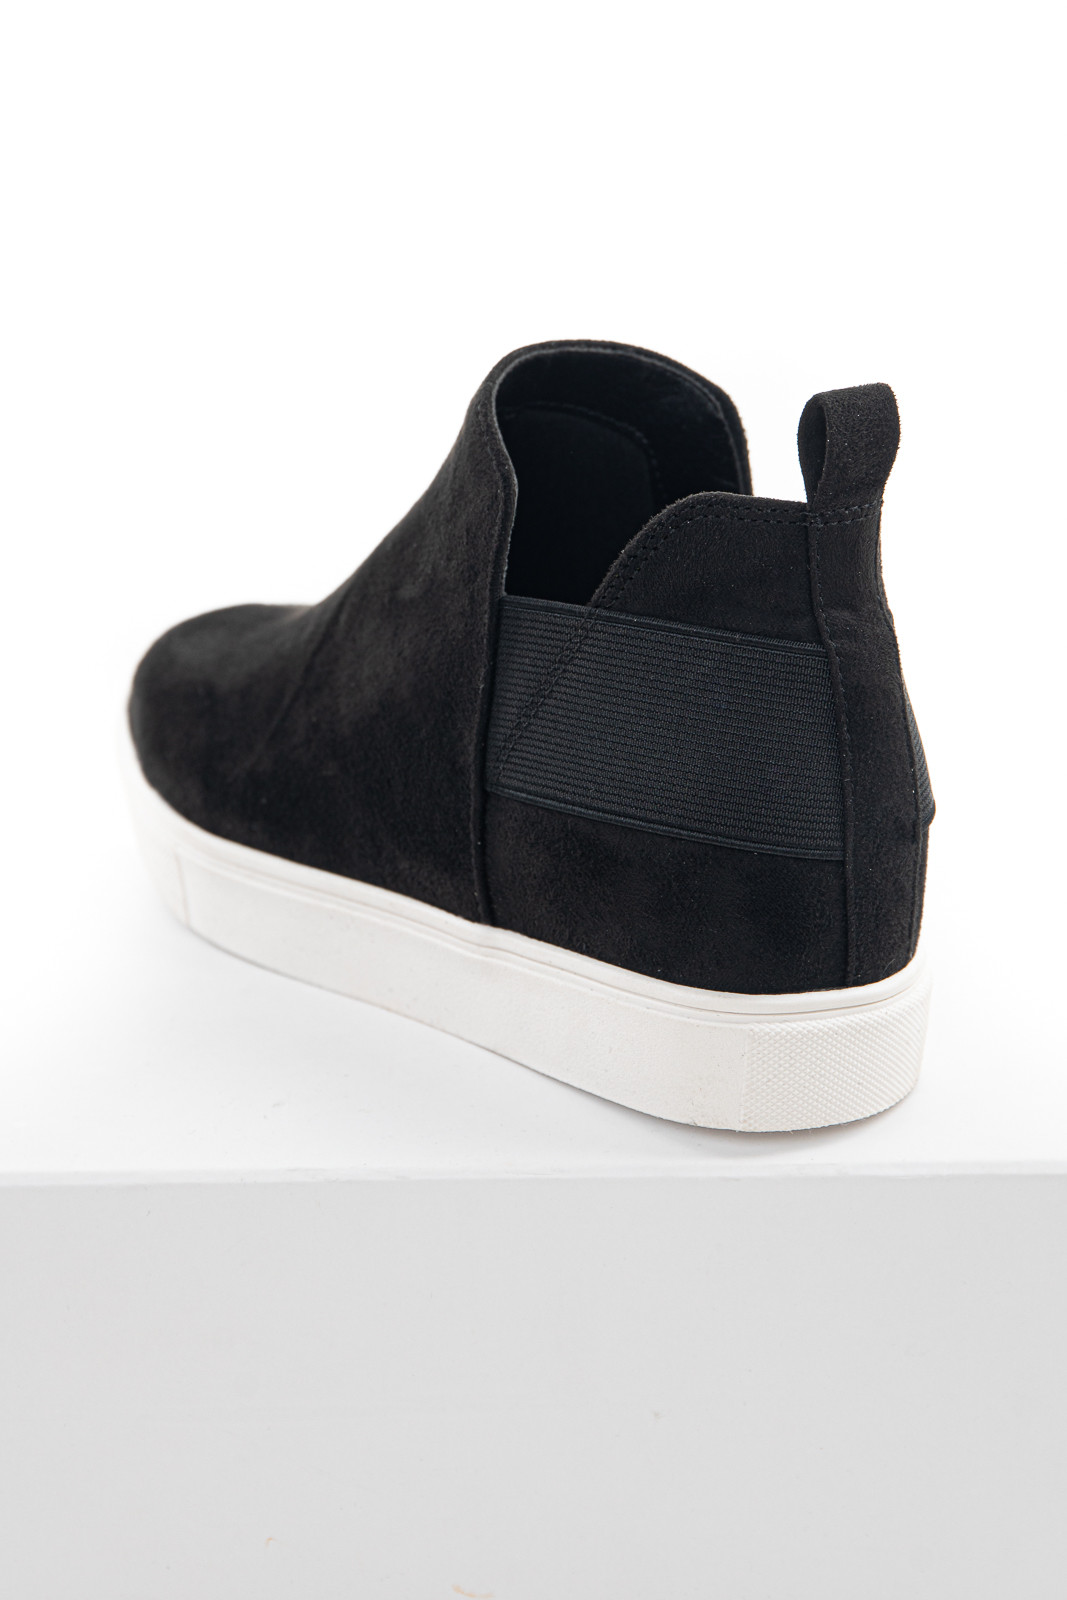 Black Faux Suede Wedge Sneaker with Elastic Band Detail